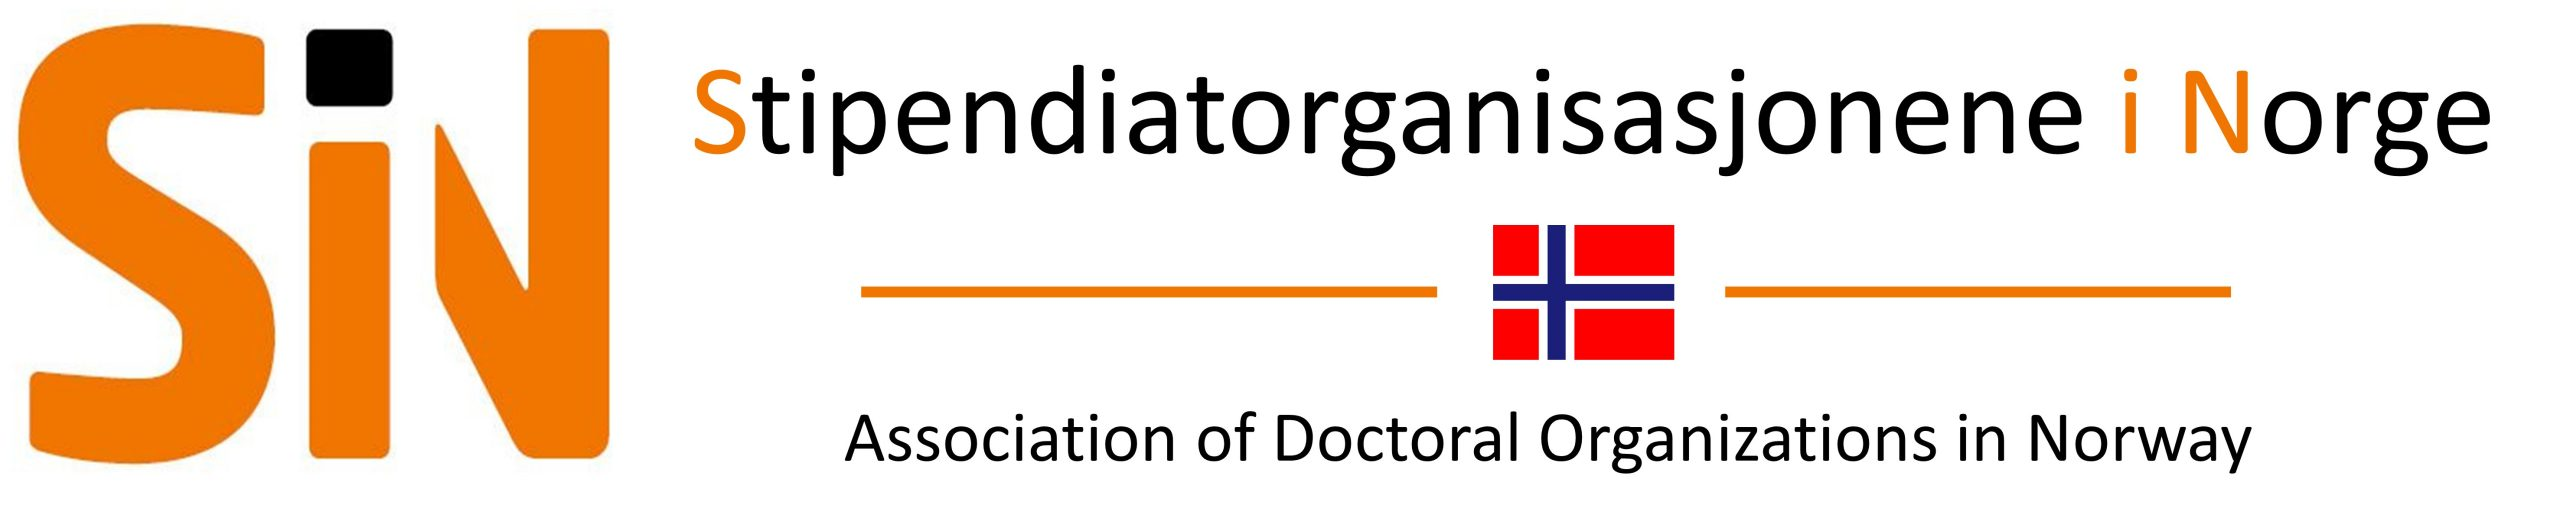 Association of Doctoral Organizations in Norway